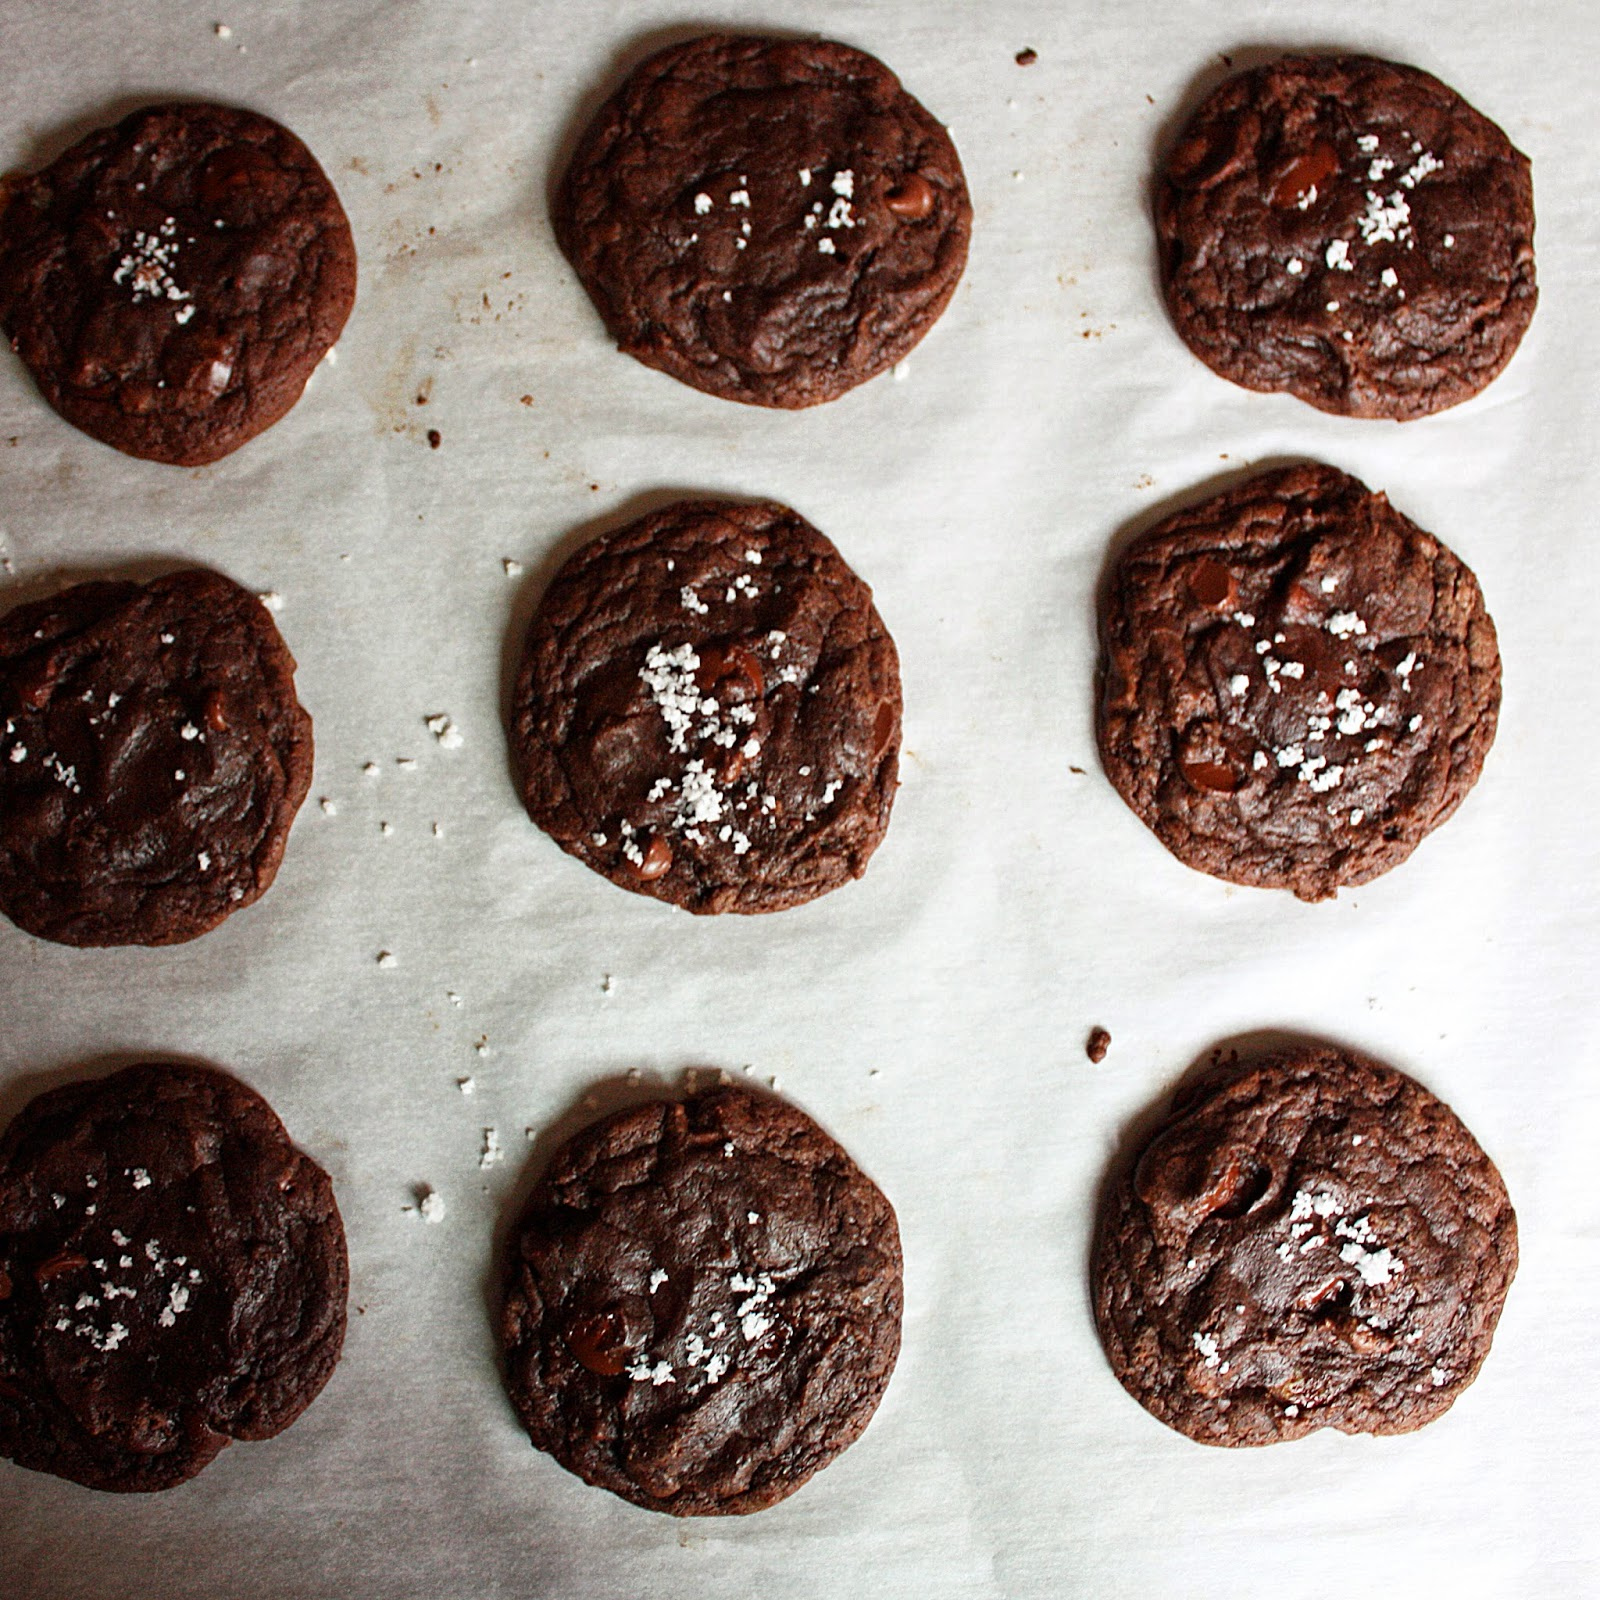 vegan double chocolate salted cookies stuffed with homemade caramels